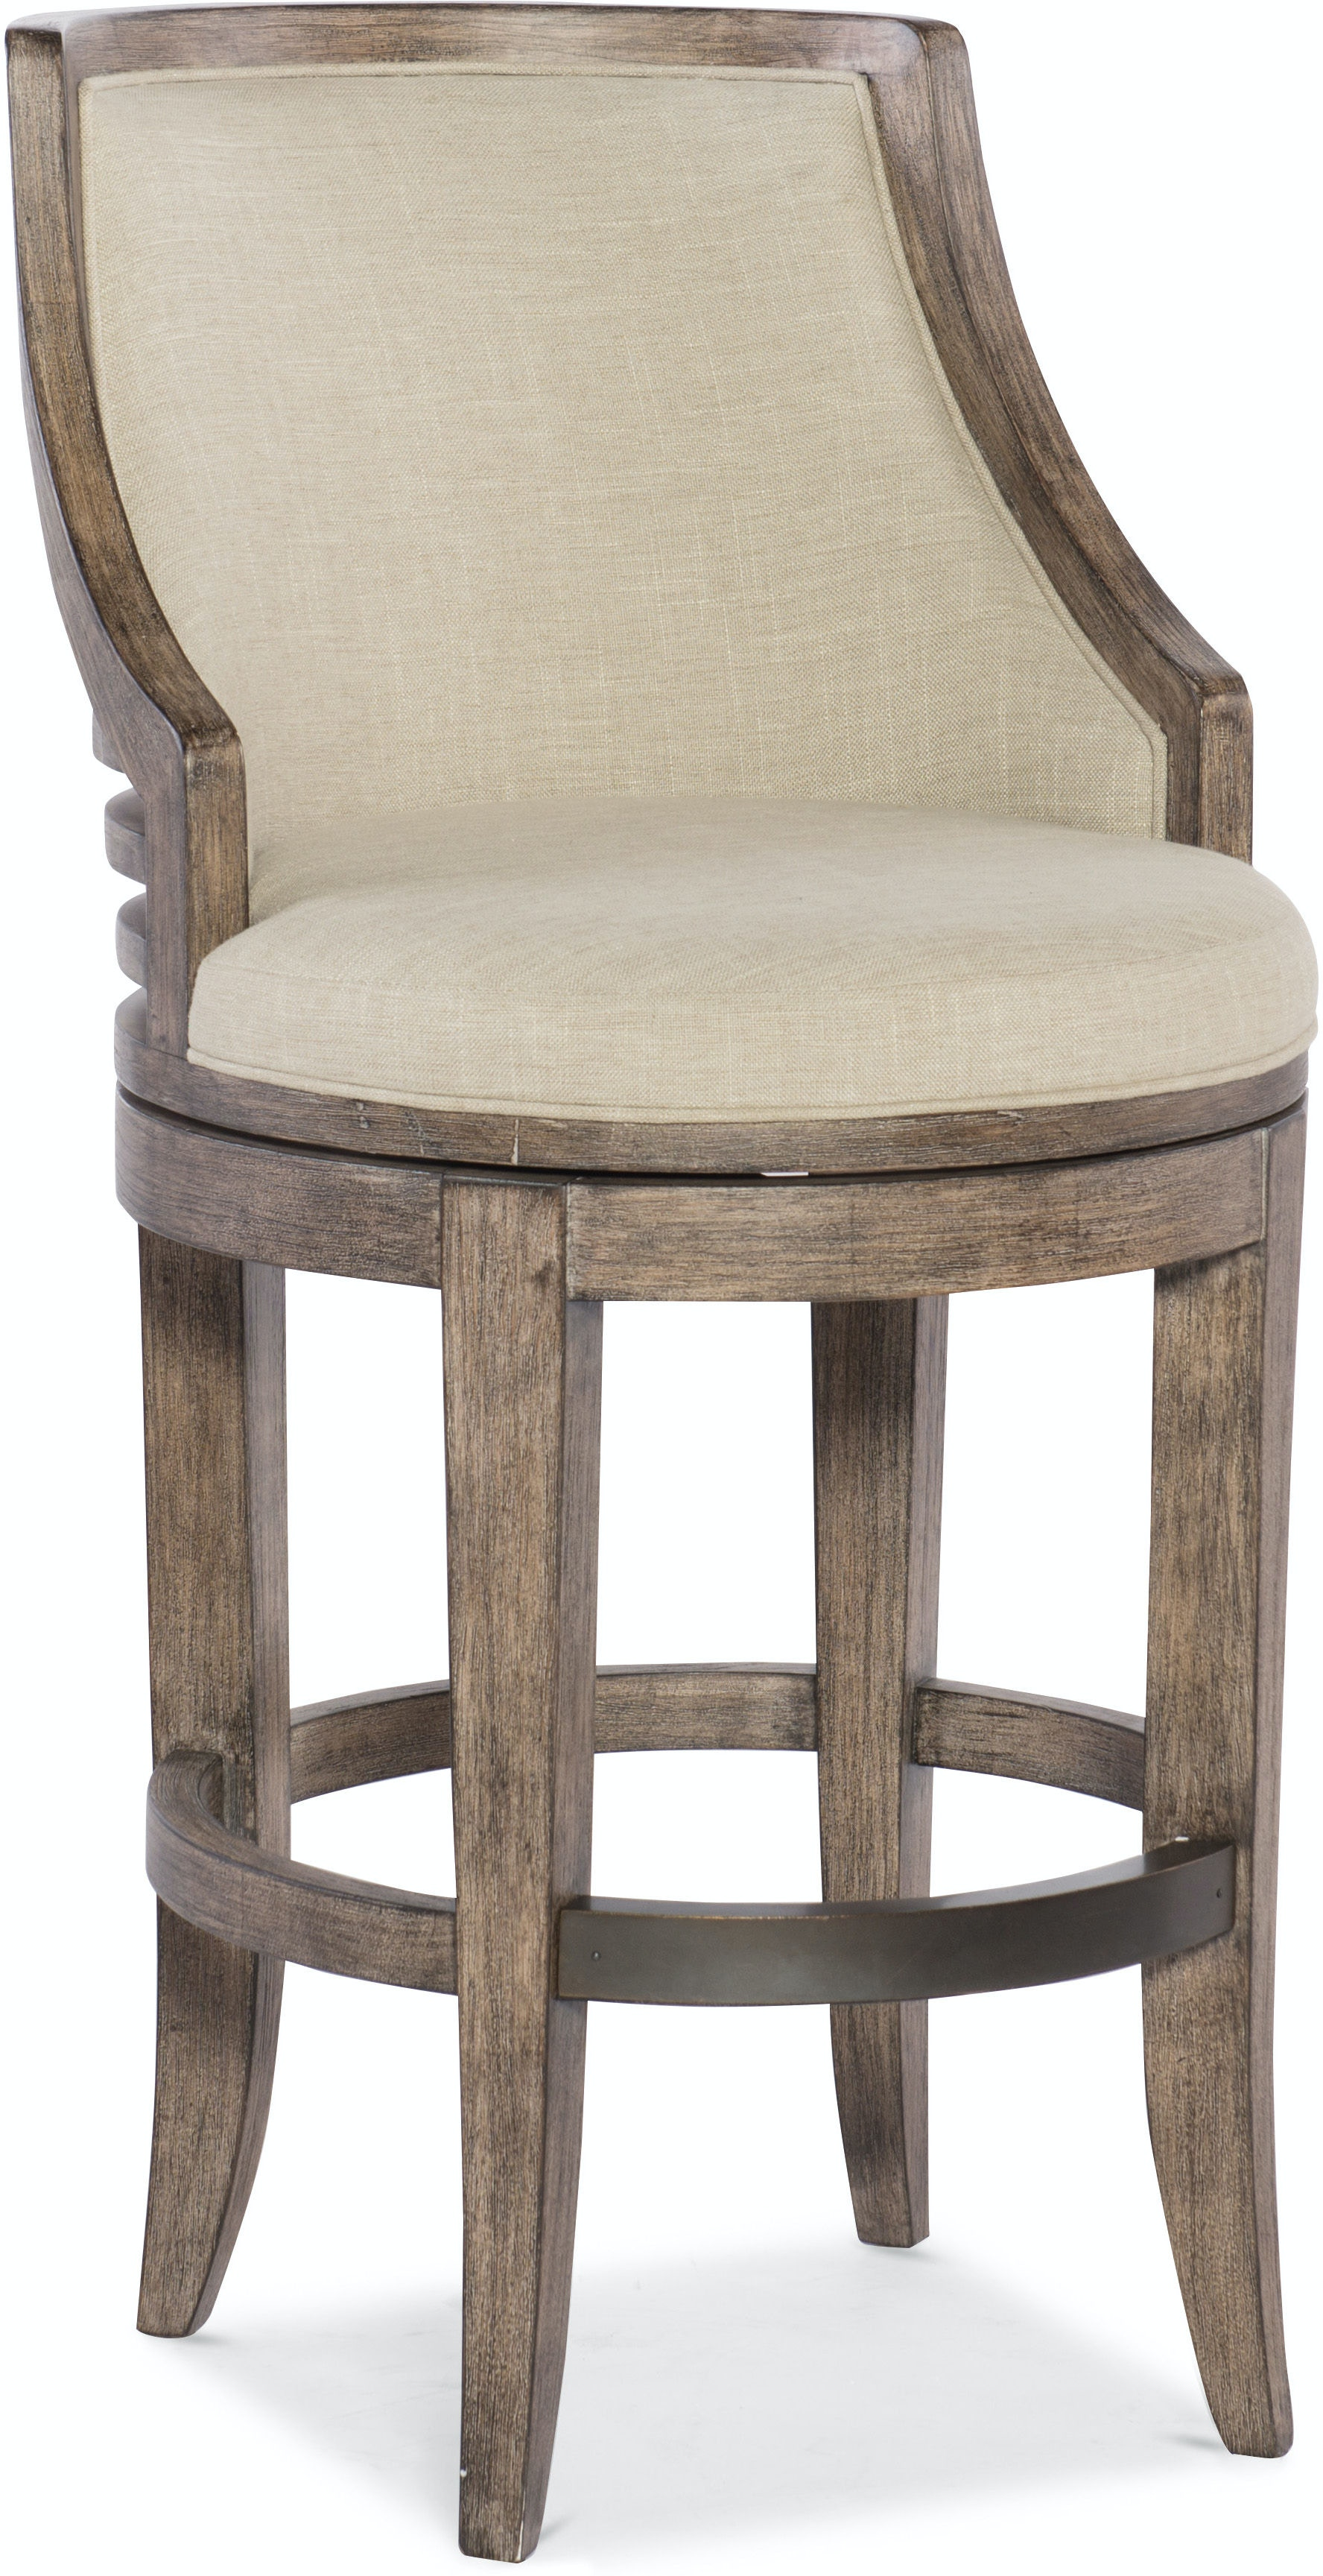 Sensational Hooker Furniture Dining Room Lainey Transitional Barstool Gmtry Best Dining Table And Chair Ideas Images Gmtryco